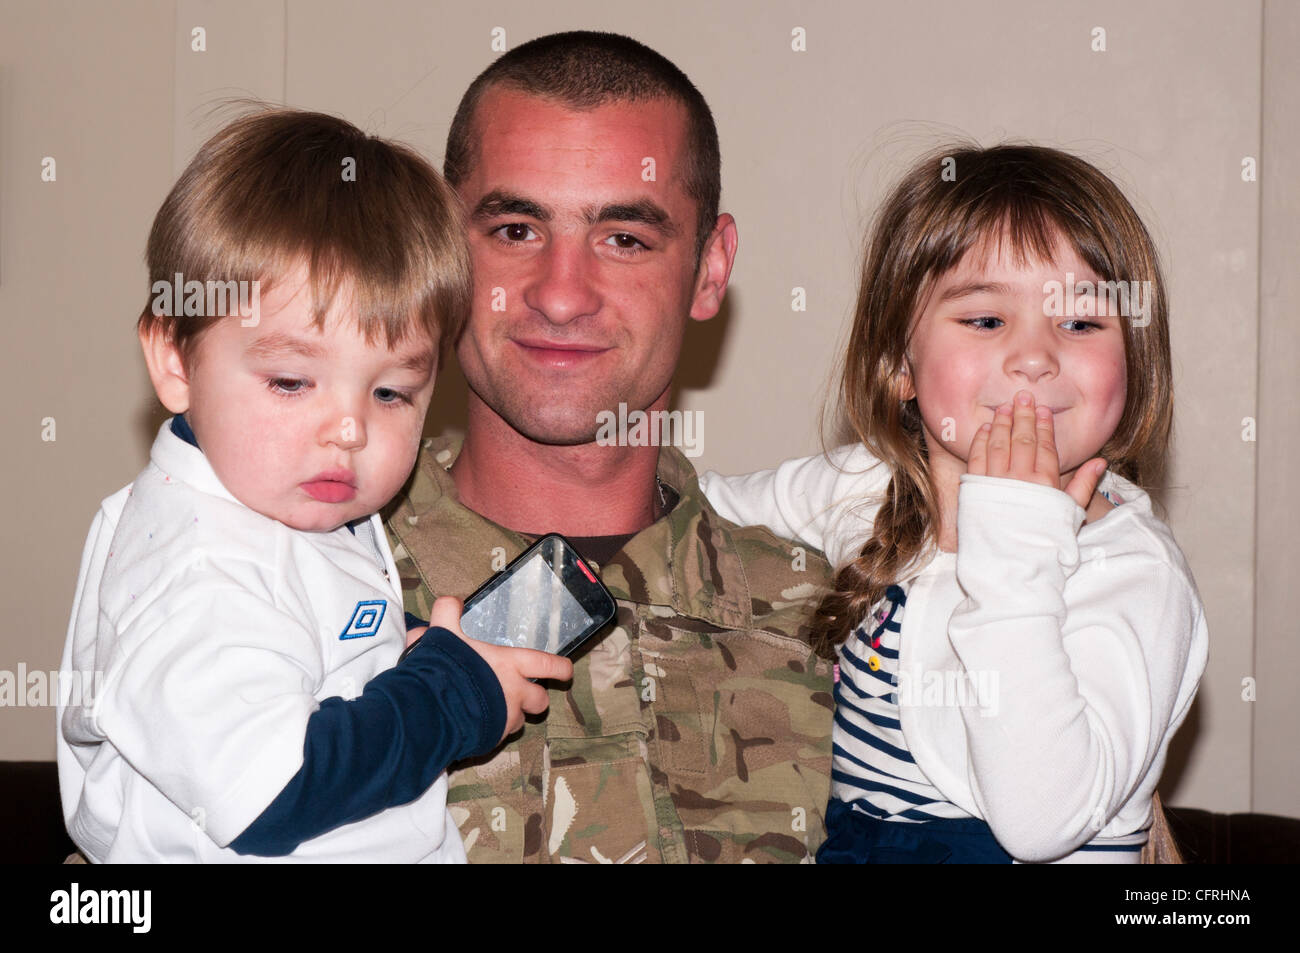 British Army Soldier In Uniform With His Children - Stock Image